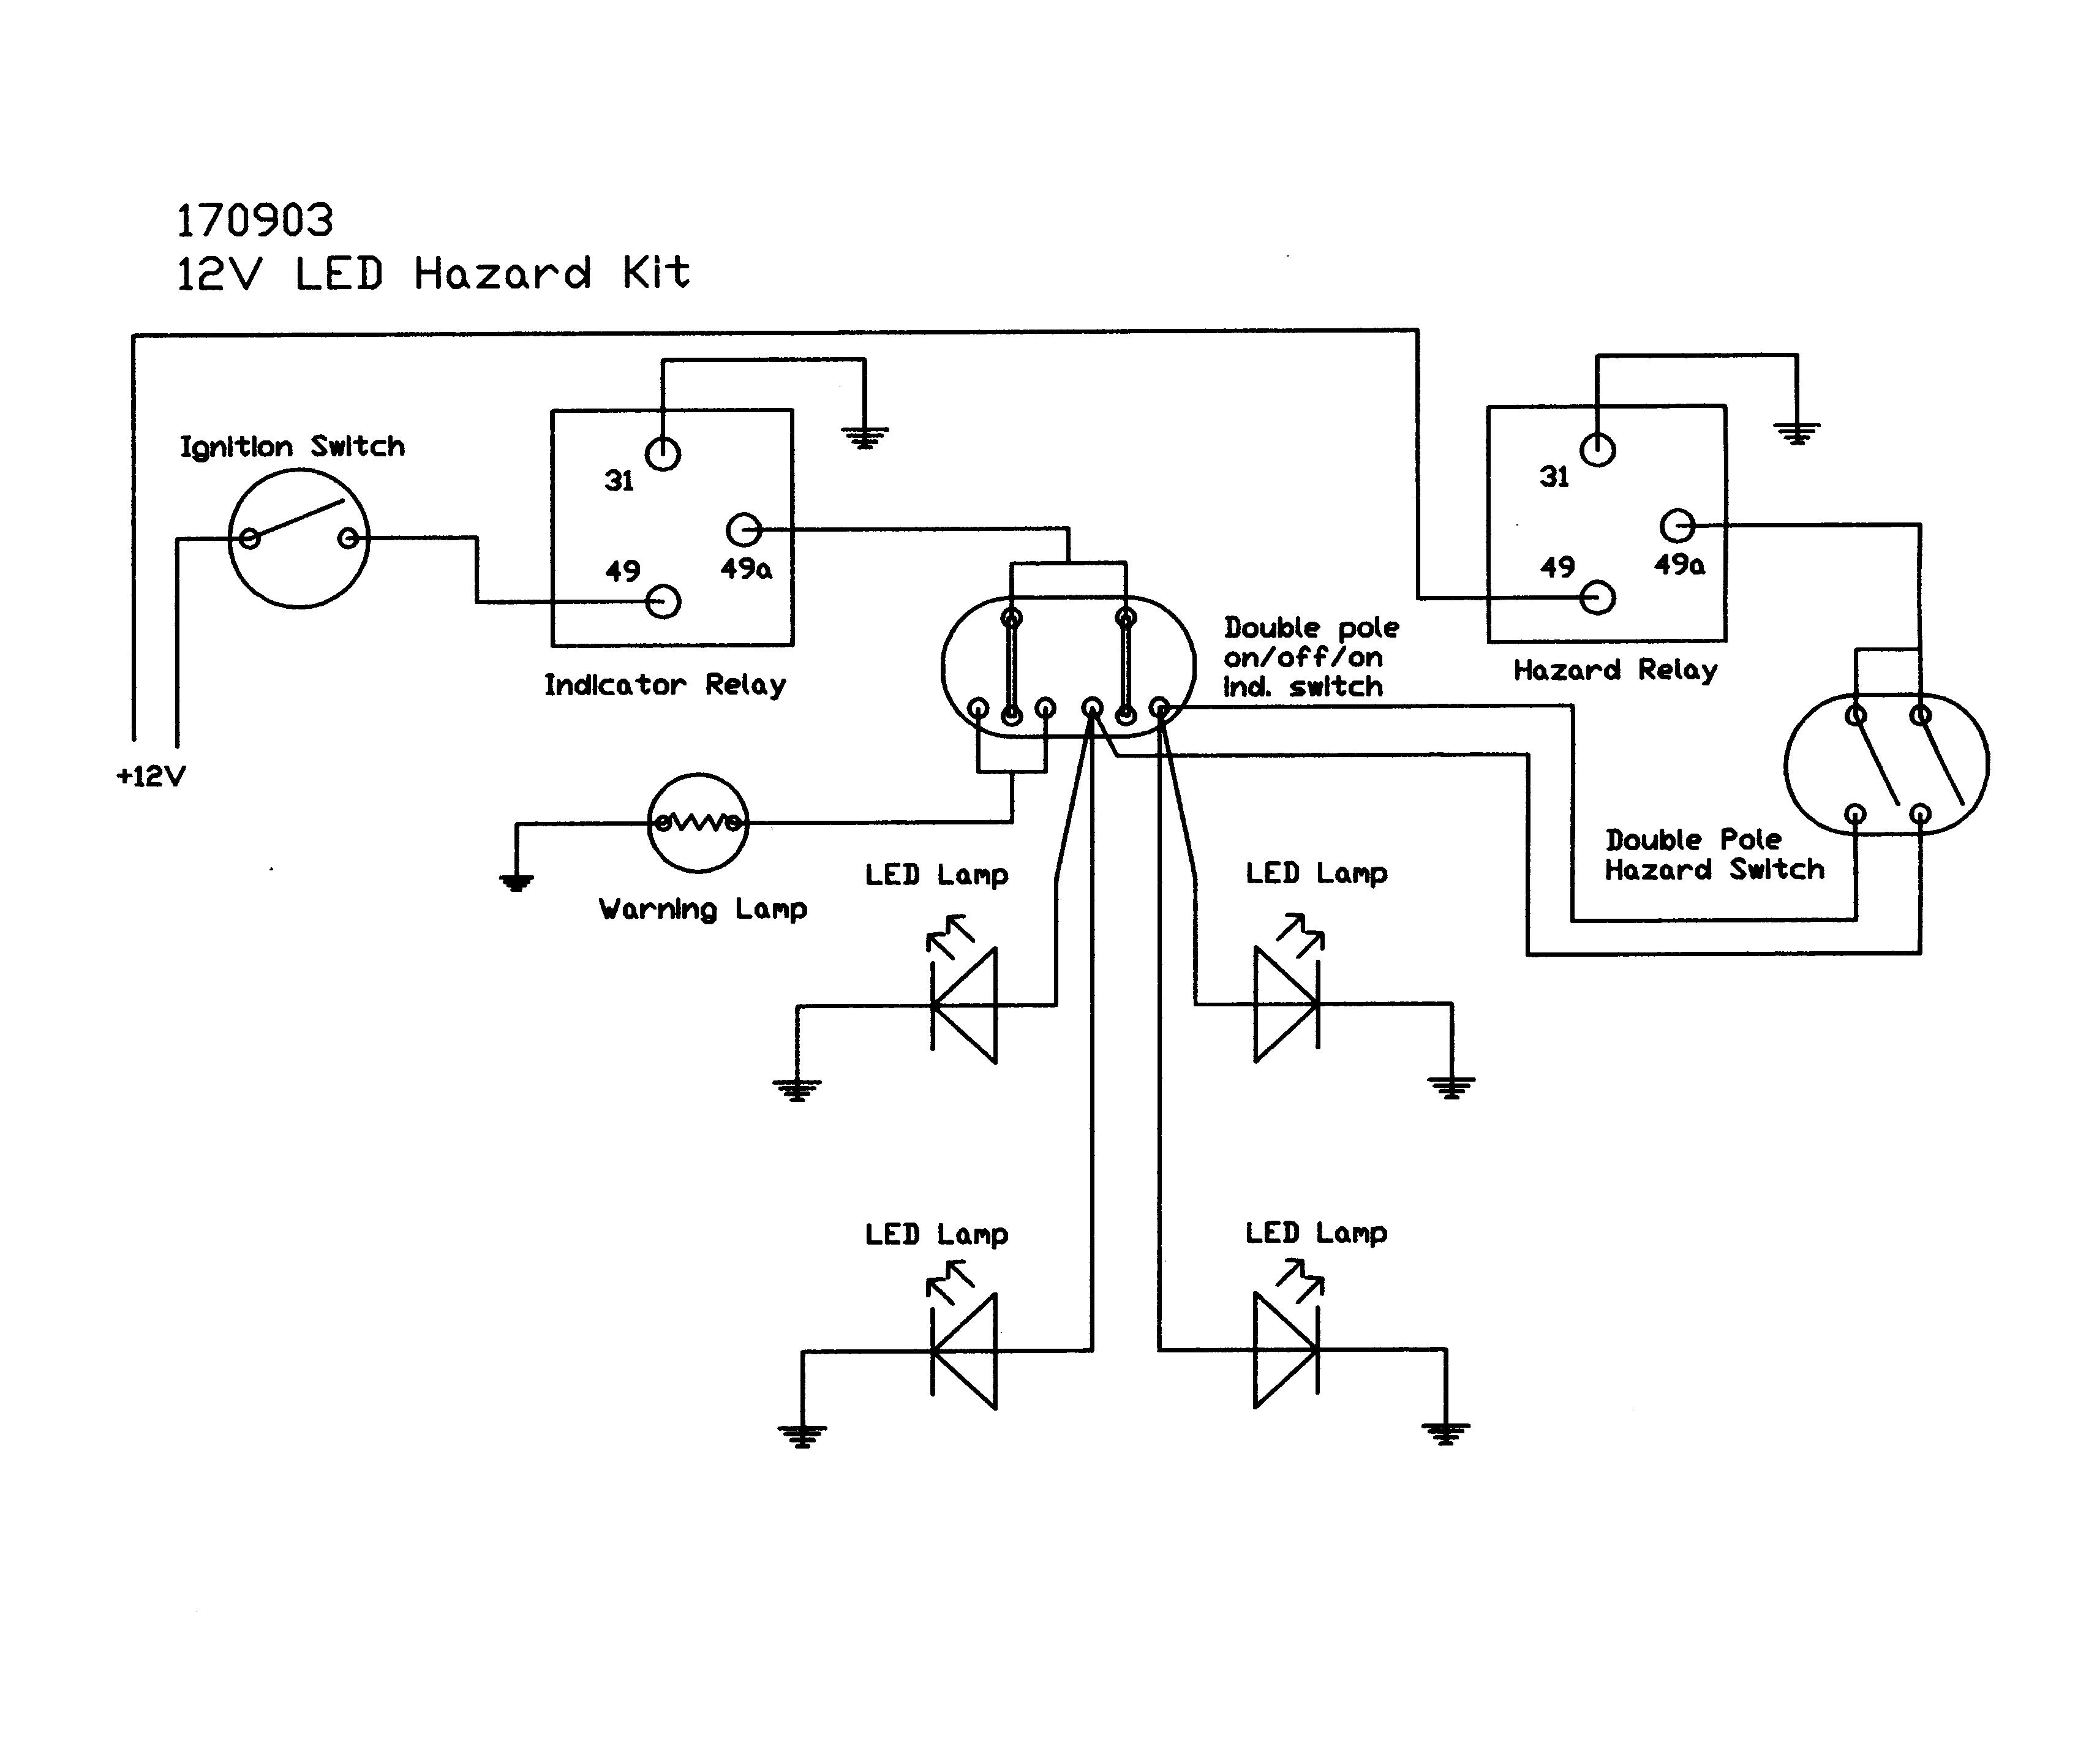 Car Wiring Diagrams Uk Diagram Will Be A Thing Free For Light Switching Get Image Ford Excursion 2000 V10 Software